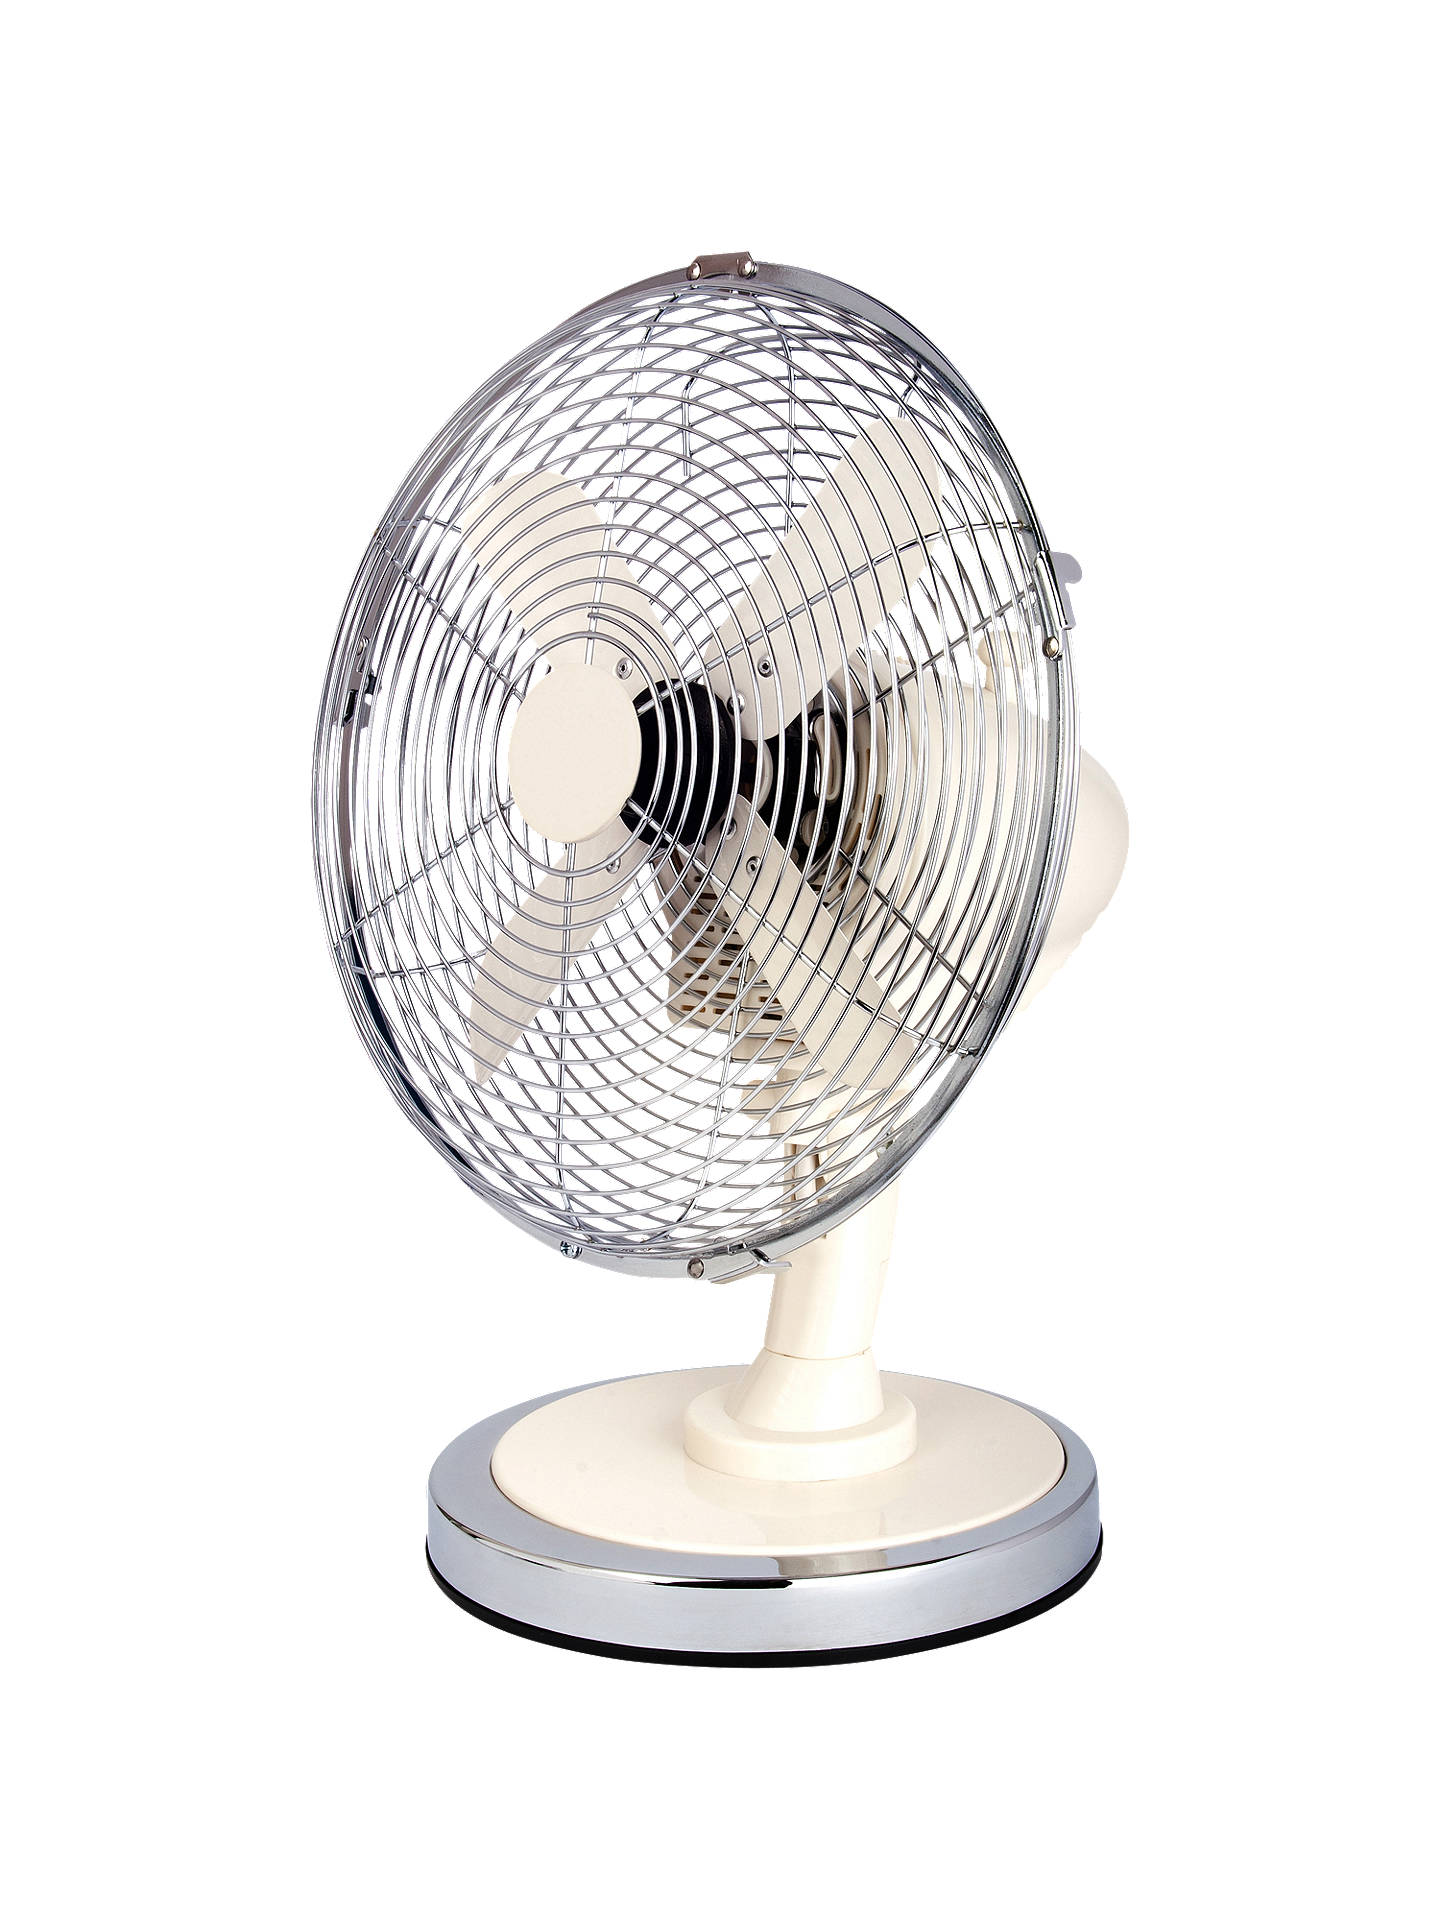 BuyNSA'UK DF-102CM White Desk Fan, 10 Inch Online at johnlewis.com